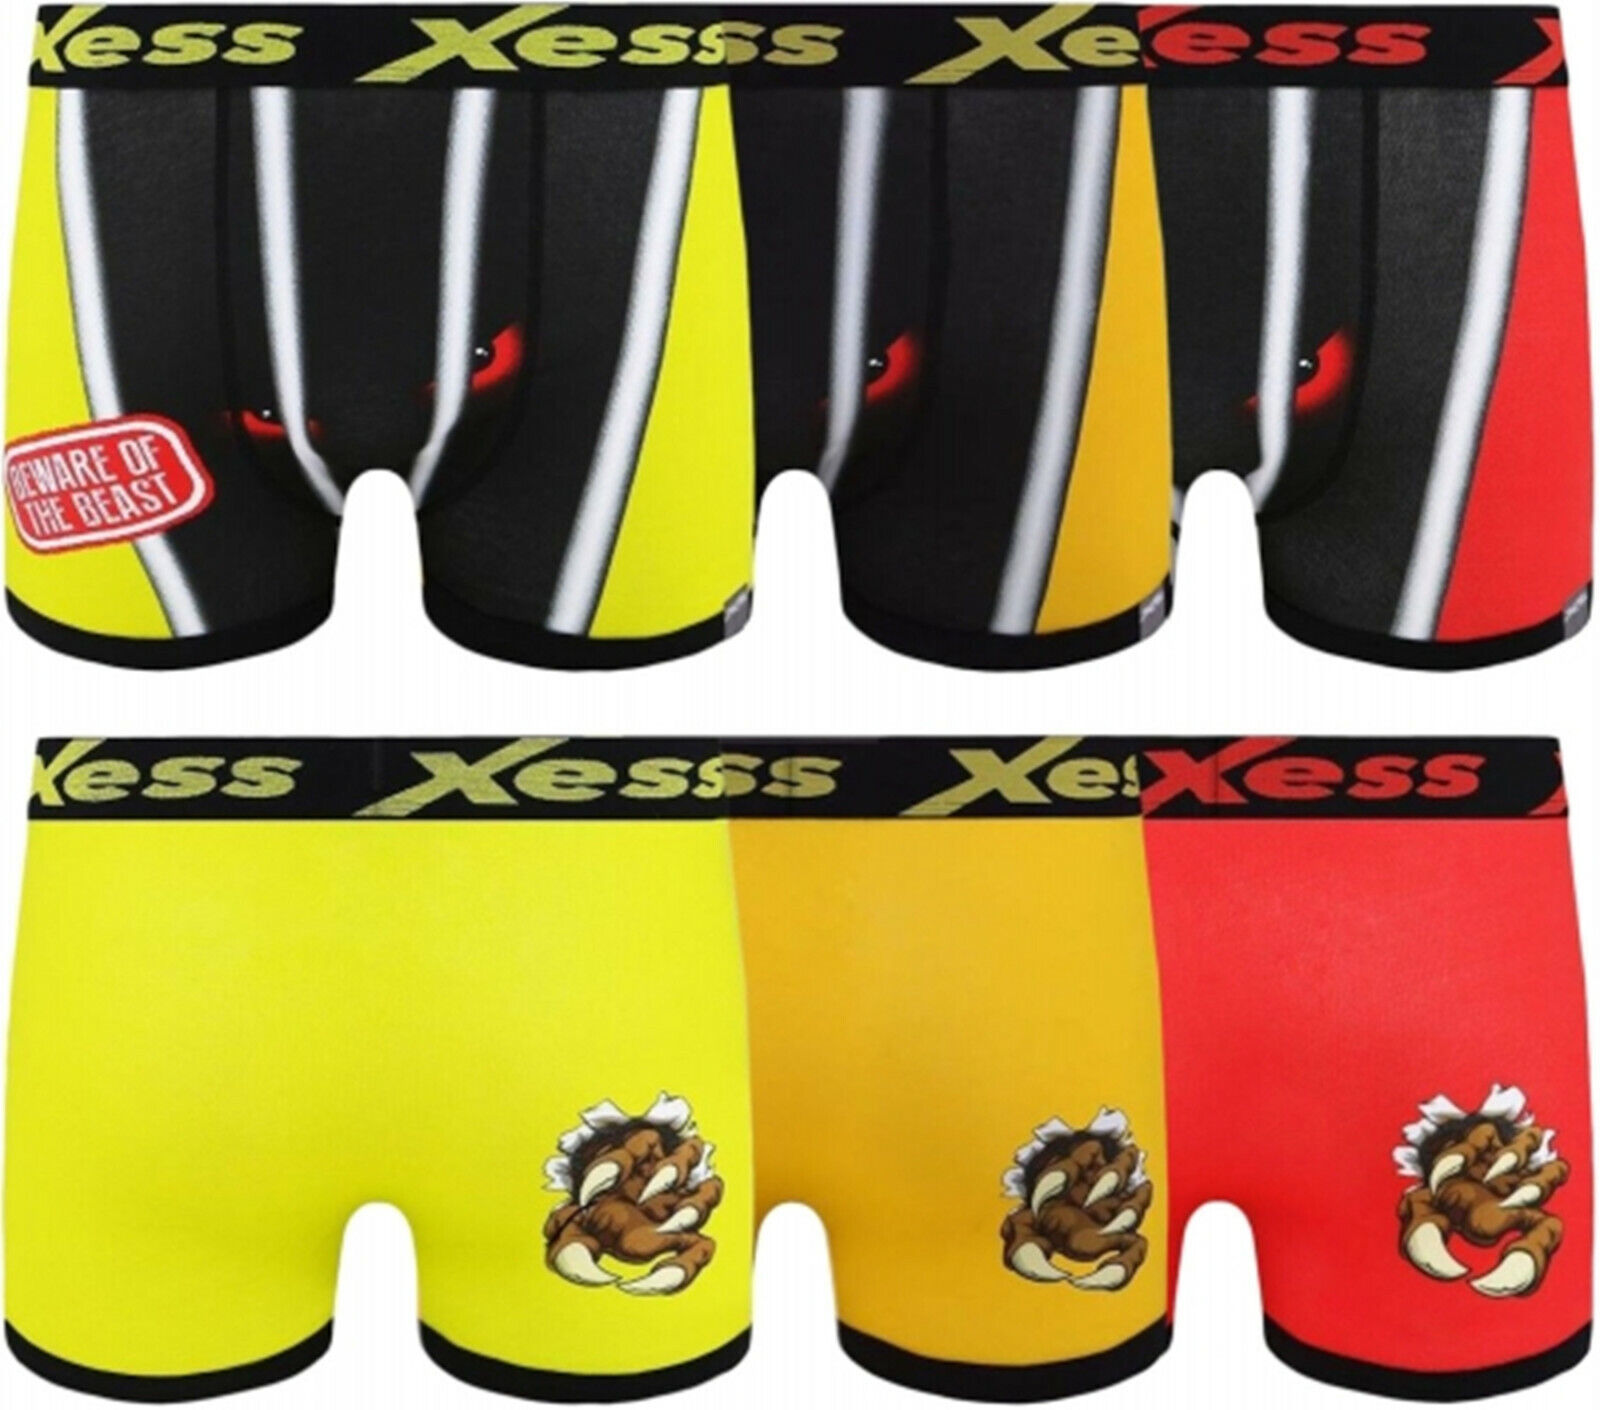 Mens Youths Xess Funny Rude Novelty Boxer Shorts - Beware Of The Beast S M L XL